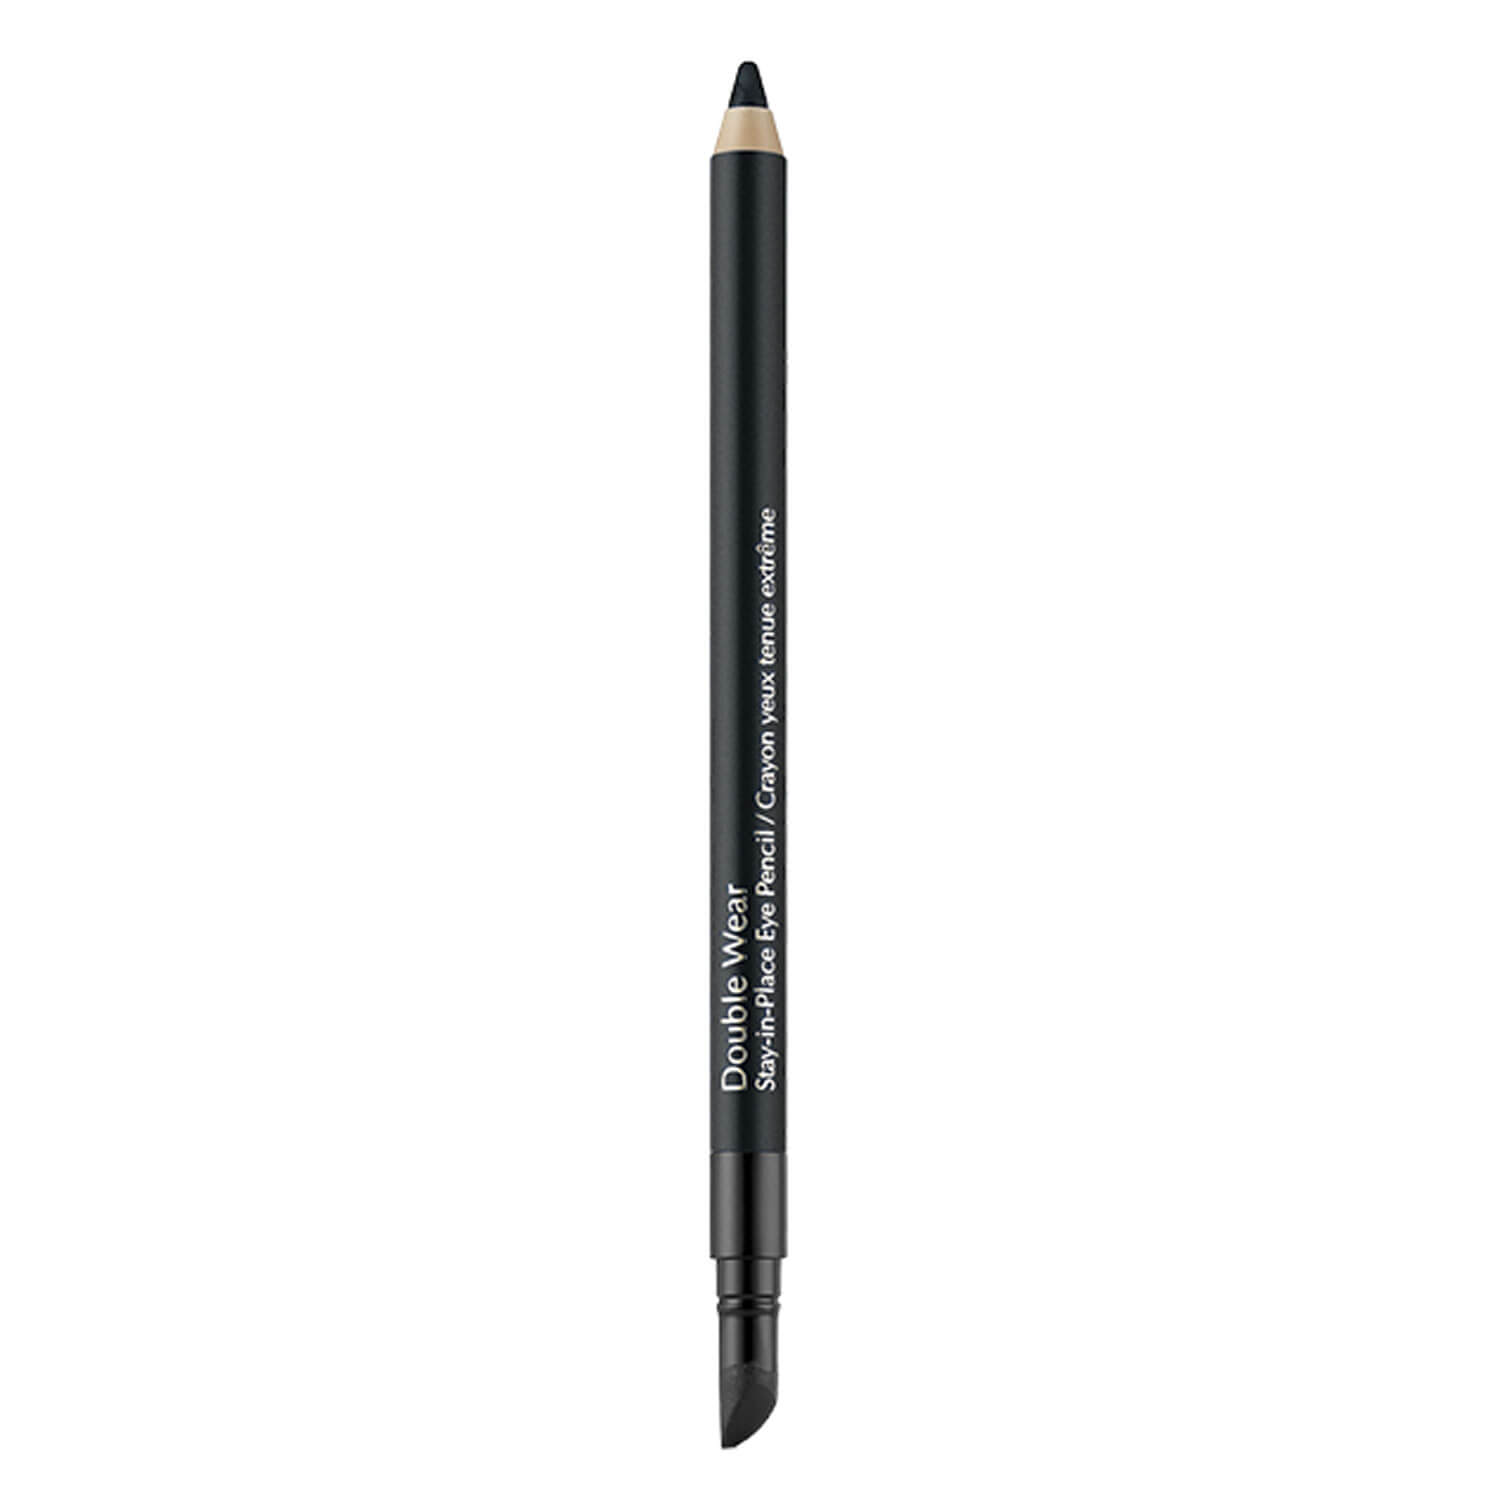 Double Wear - Stay-in-Place Eye Pencil Onyx - 1.2g